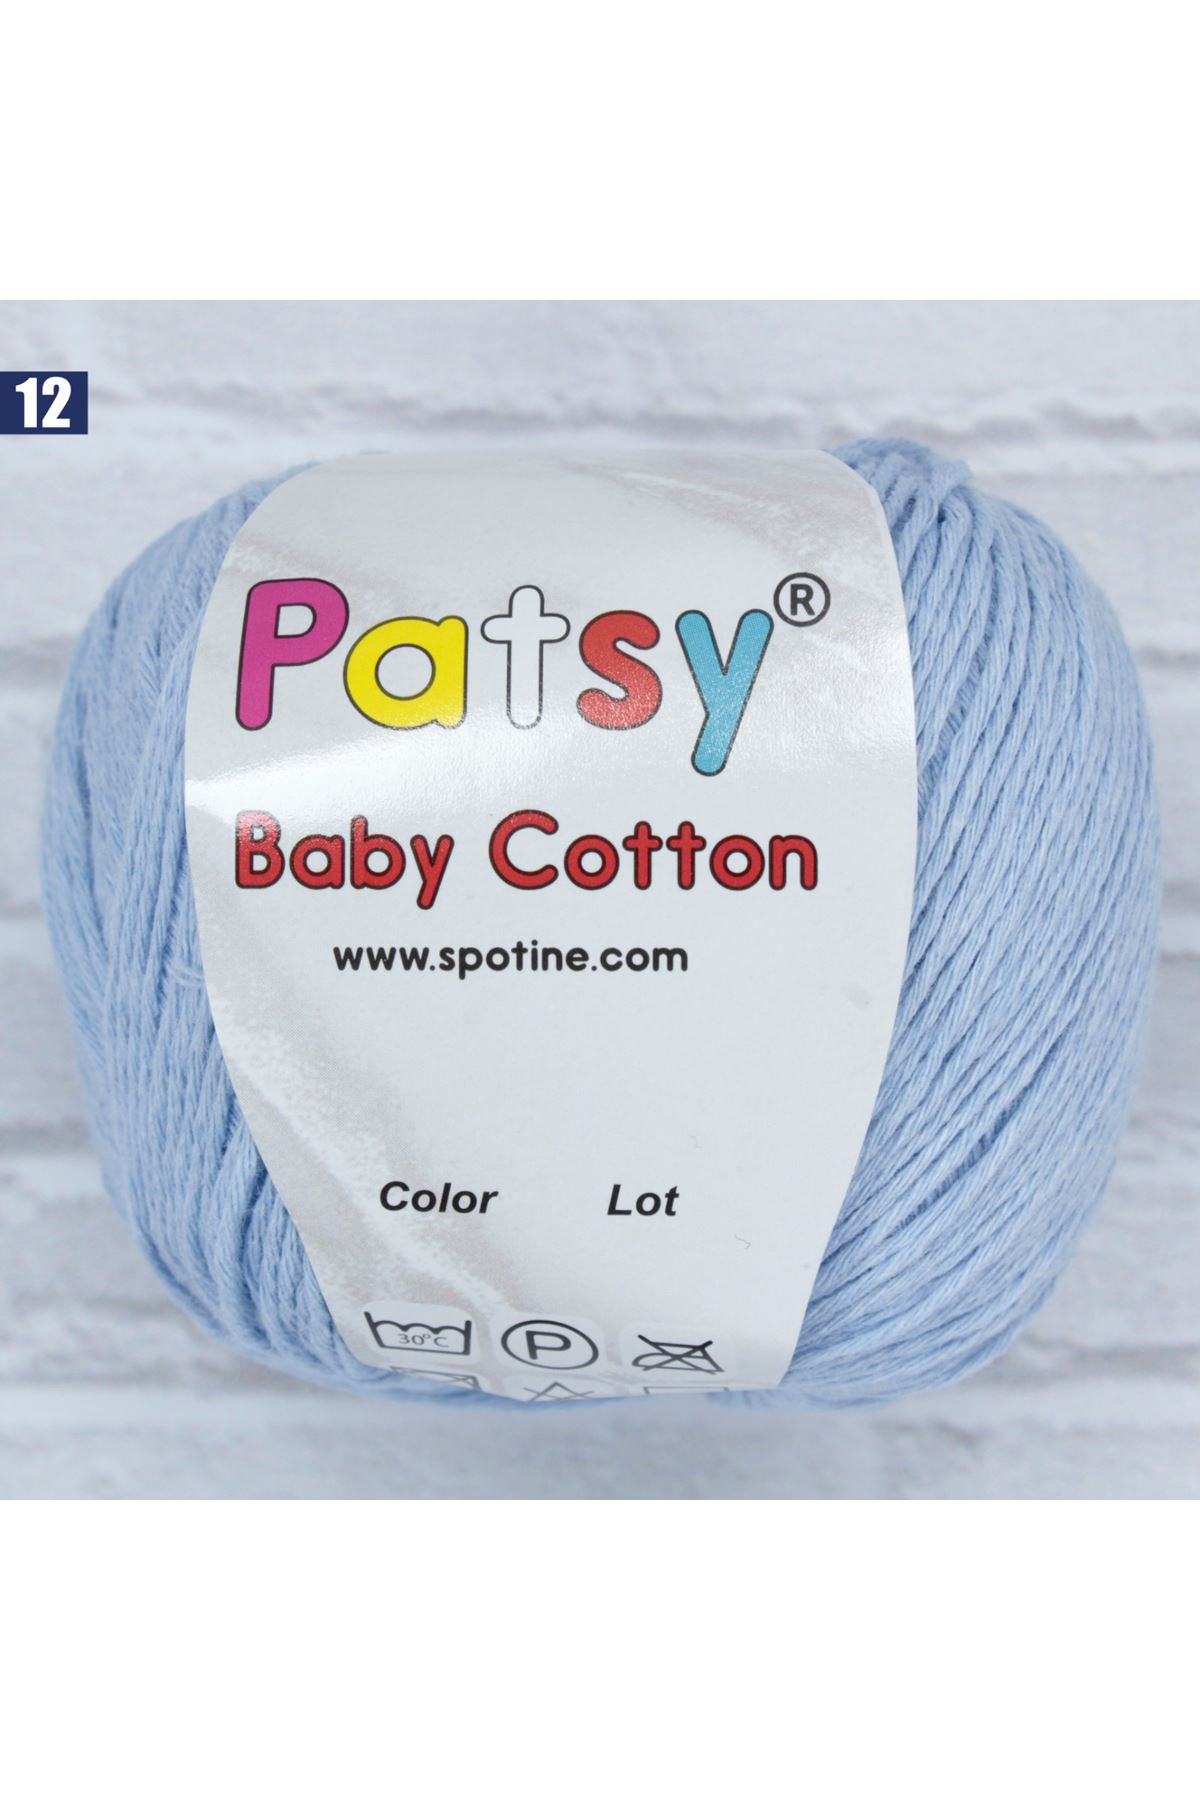 Patsy Baby Cotton 12